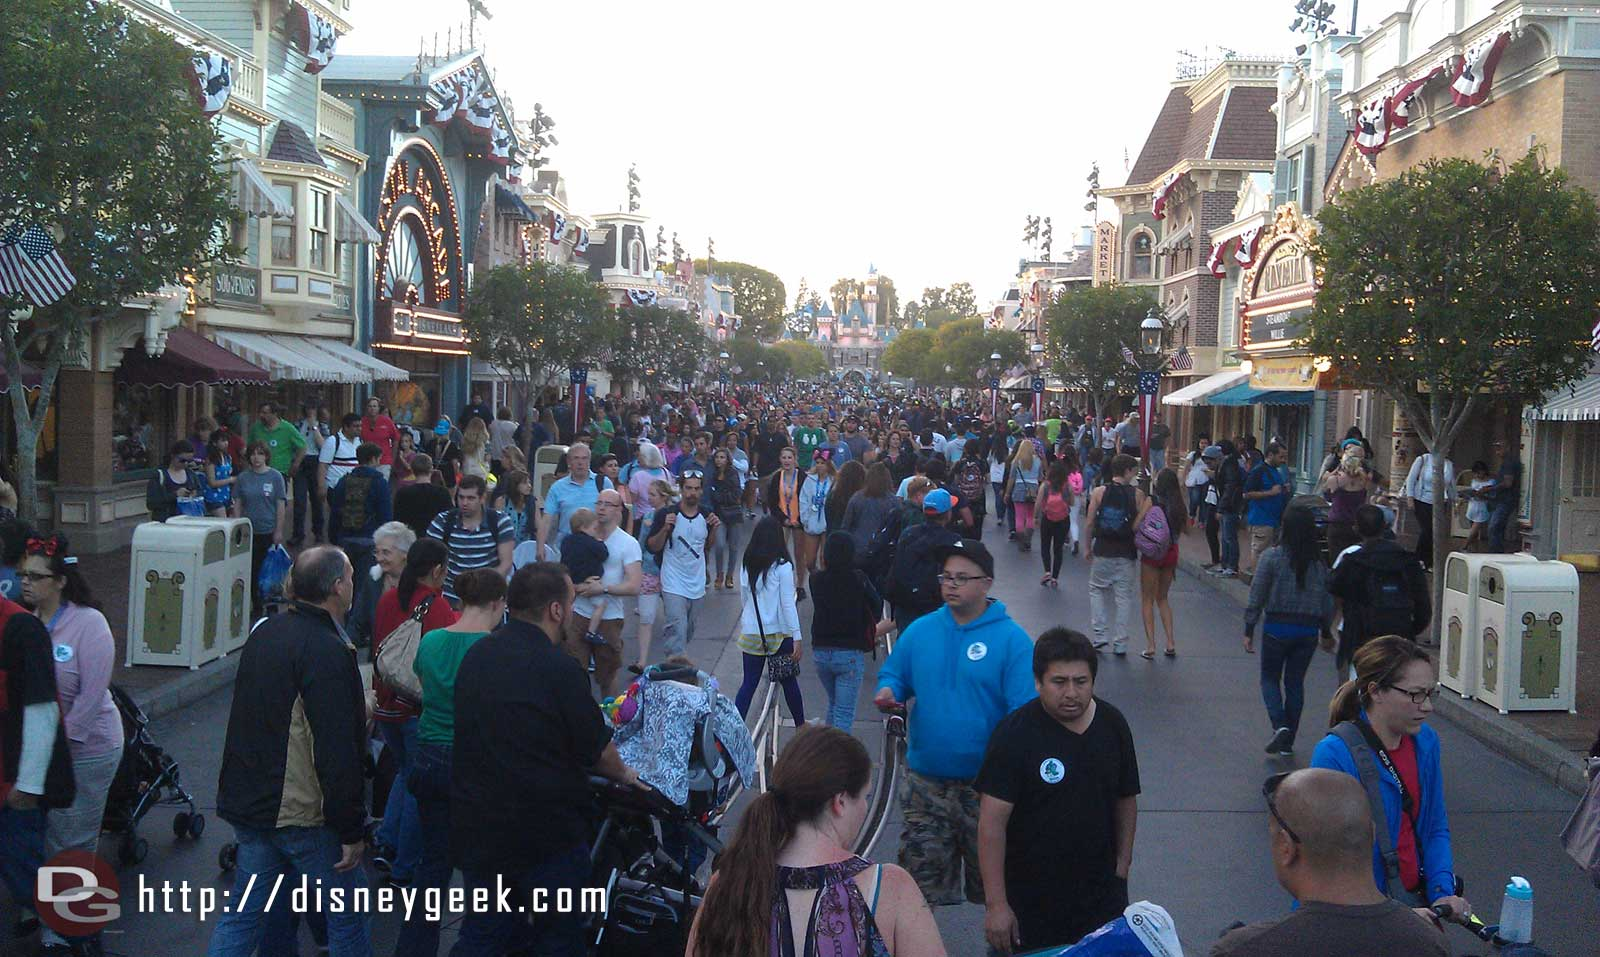 Main Street is nice and crowded now